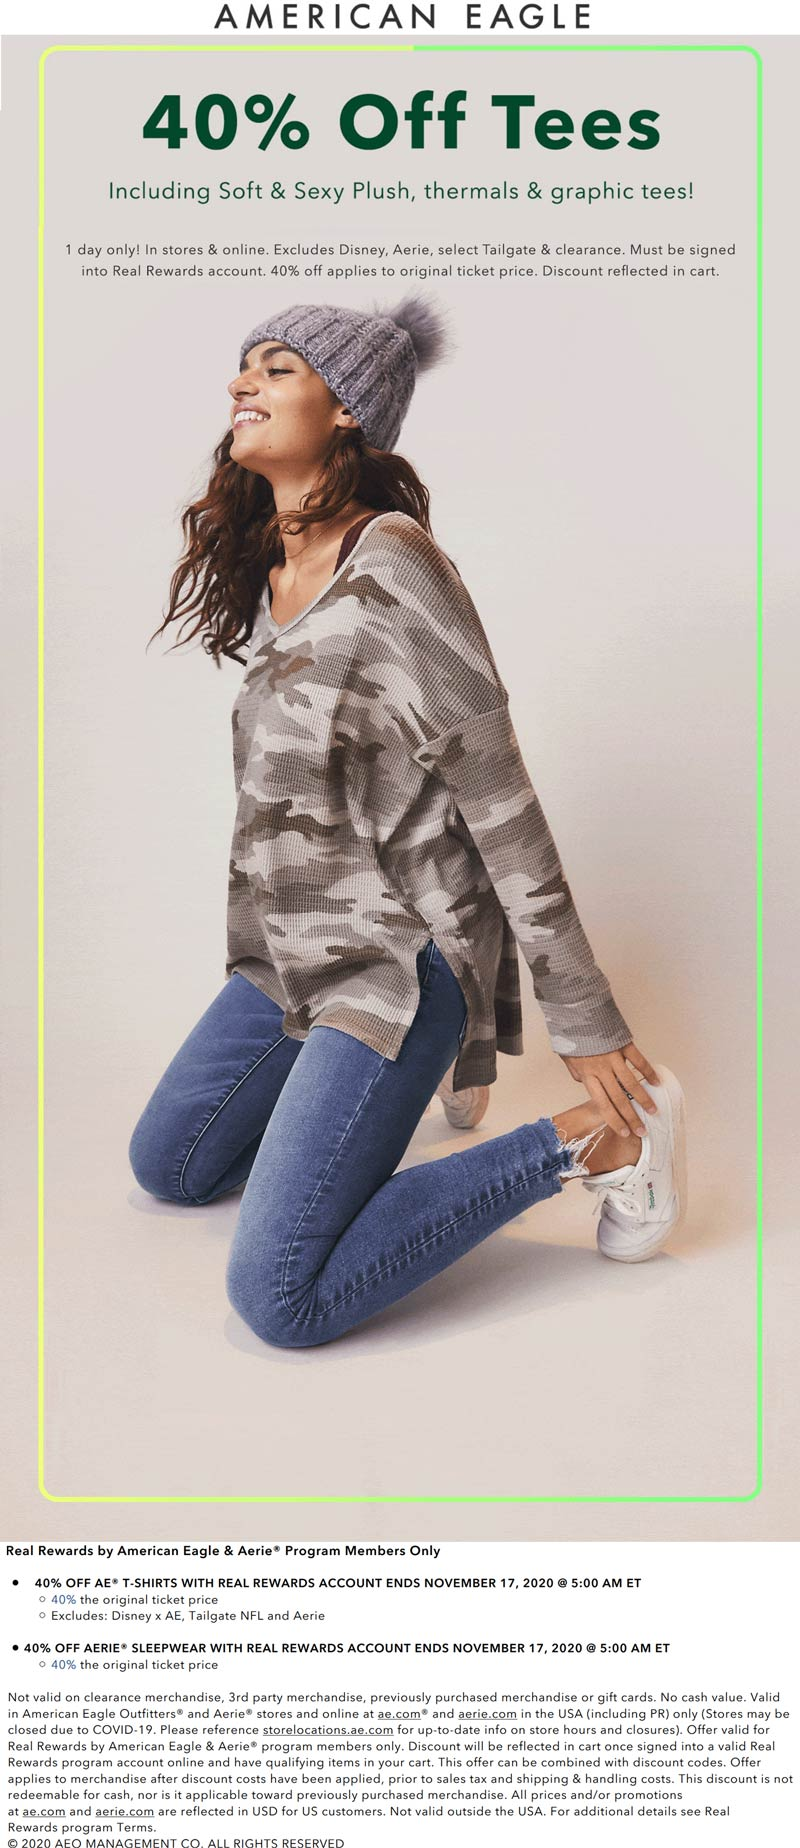 American Eagle stores Coupon  40% off AE t-shirts & Aerie sleepwear today at American Eagle, ditto online #americaneagle